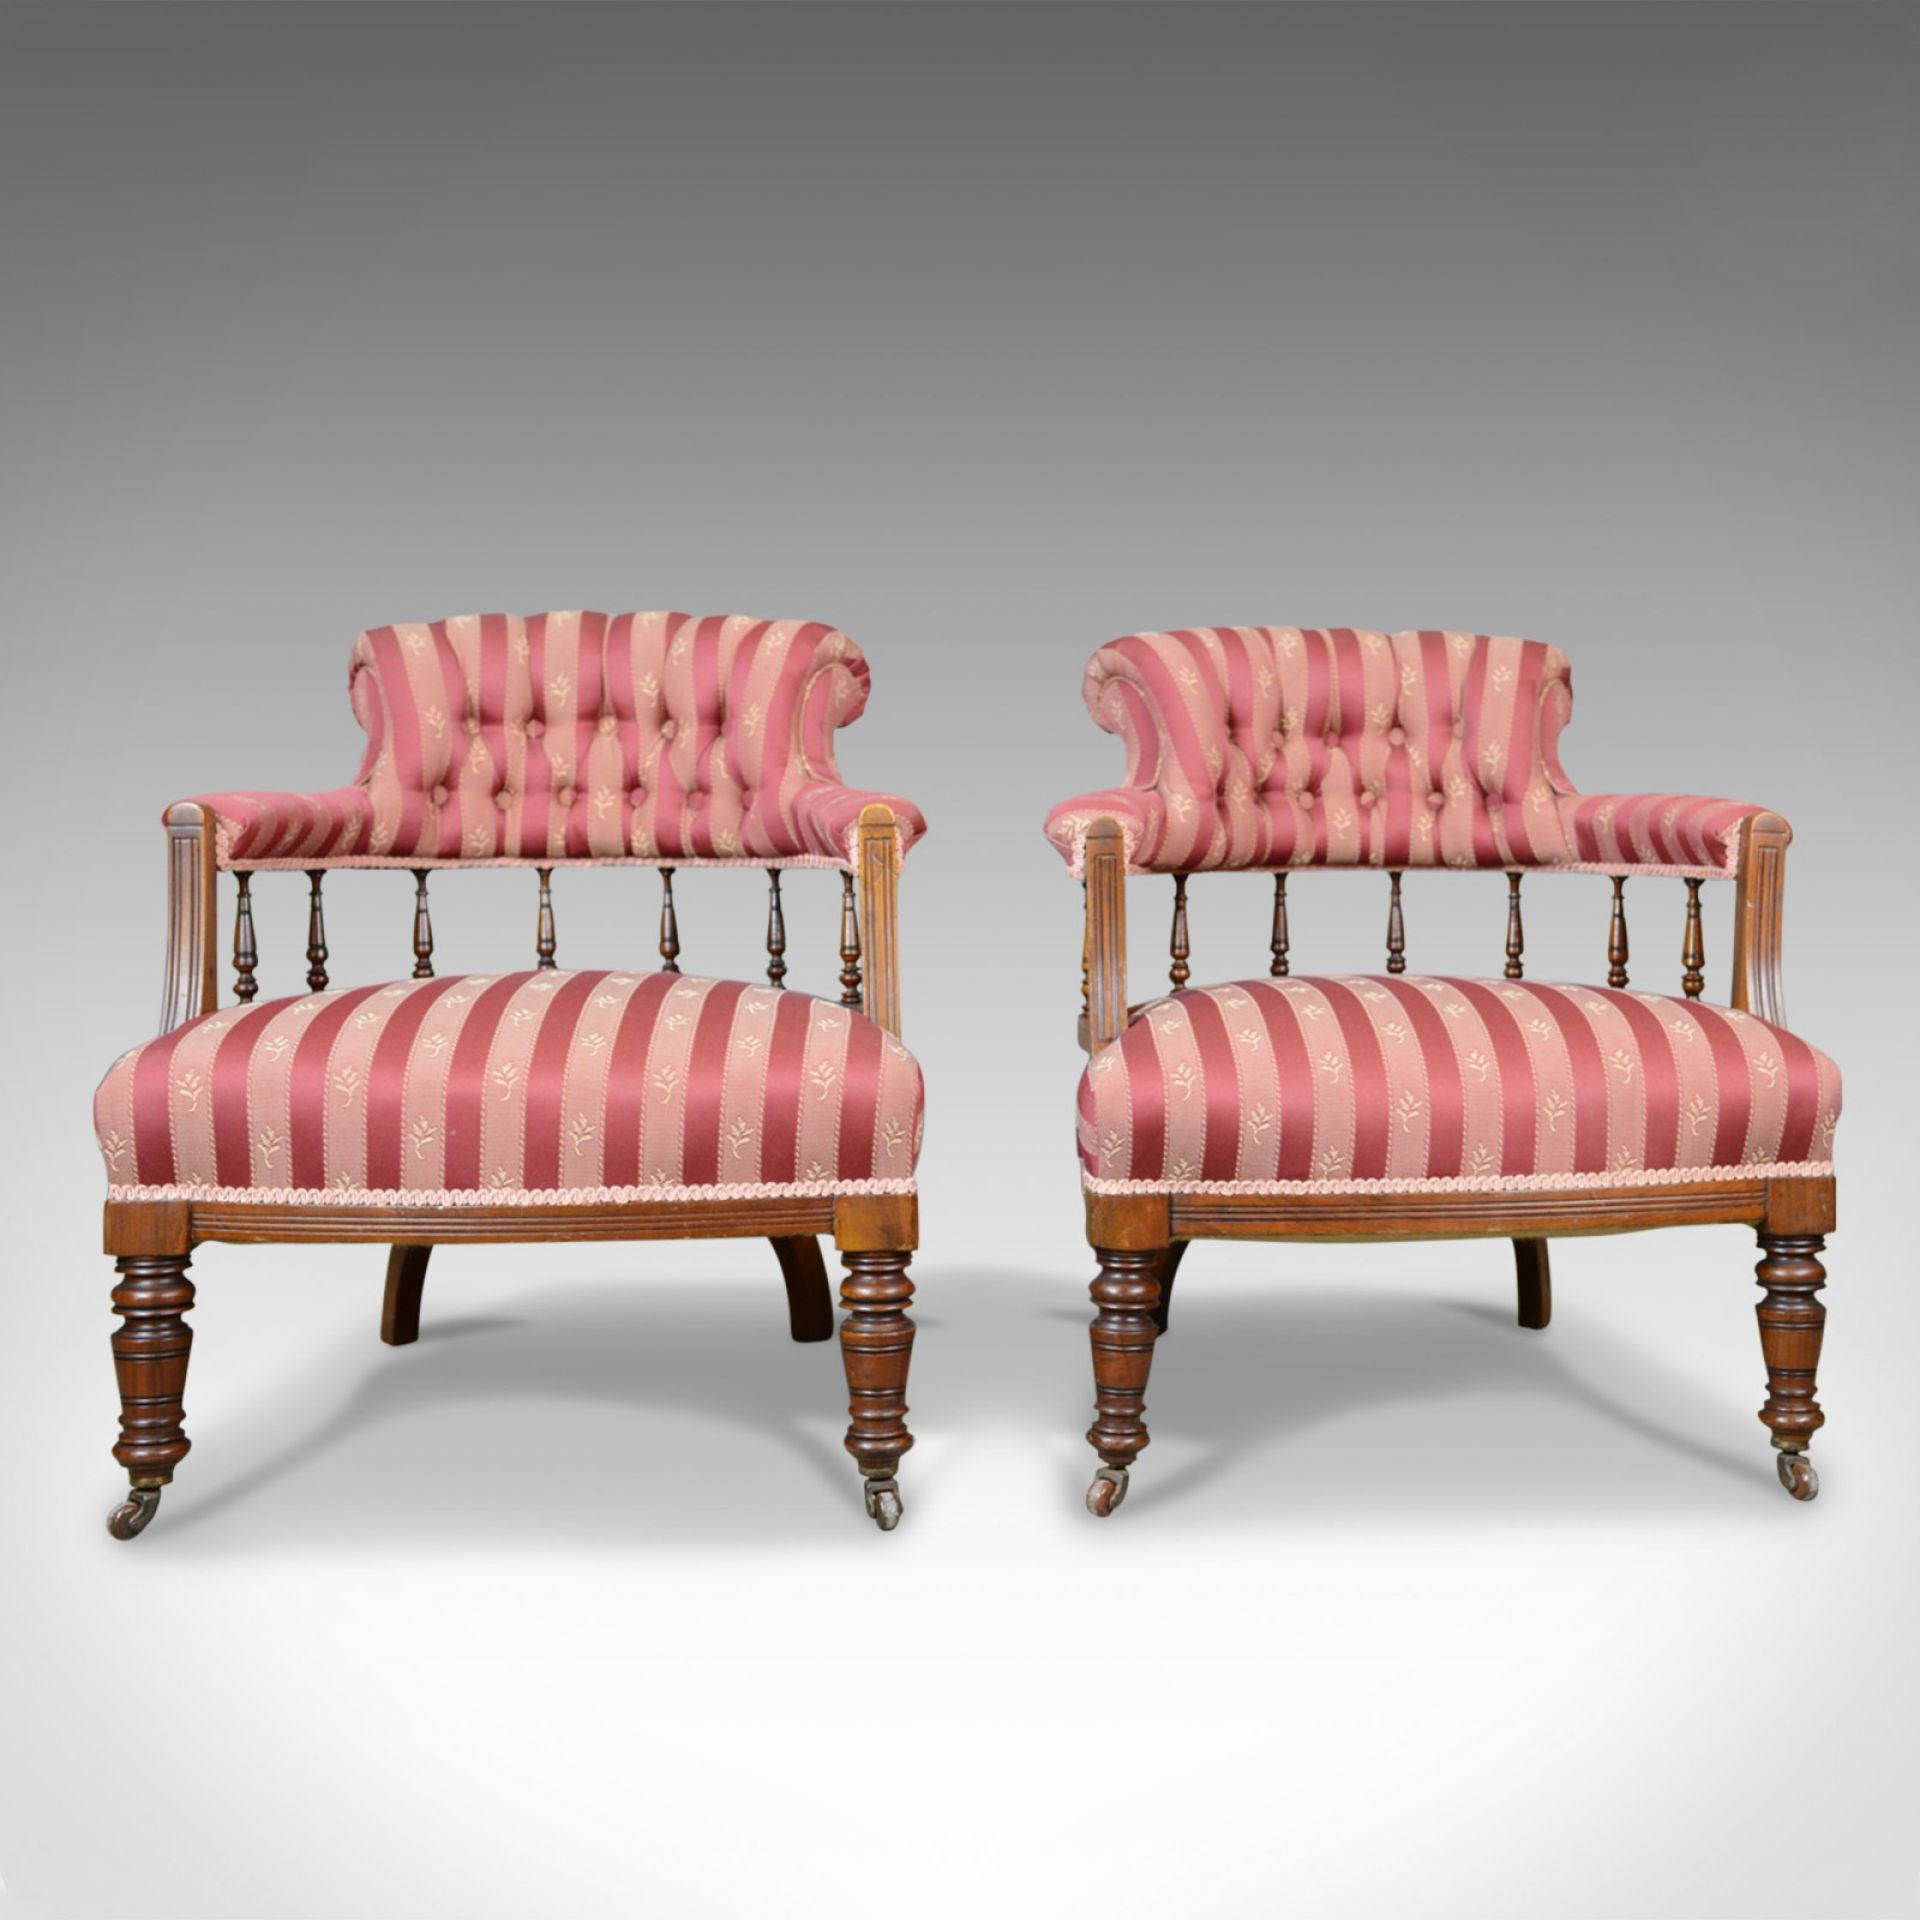 Pair of Antique Salon Chairs, English, Edwardian, Scroll Back Armchairs c.1910